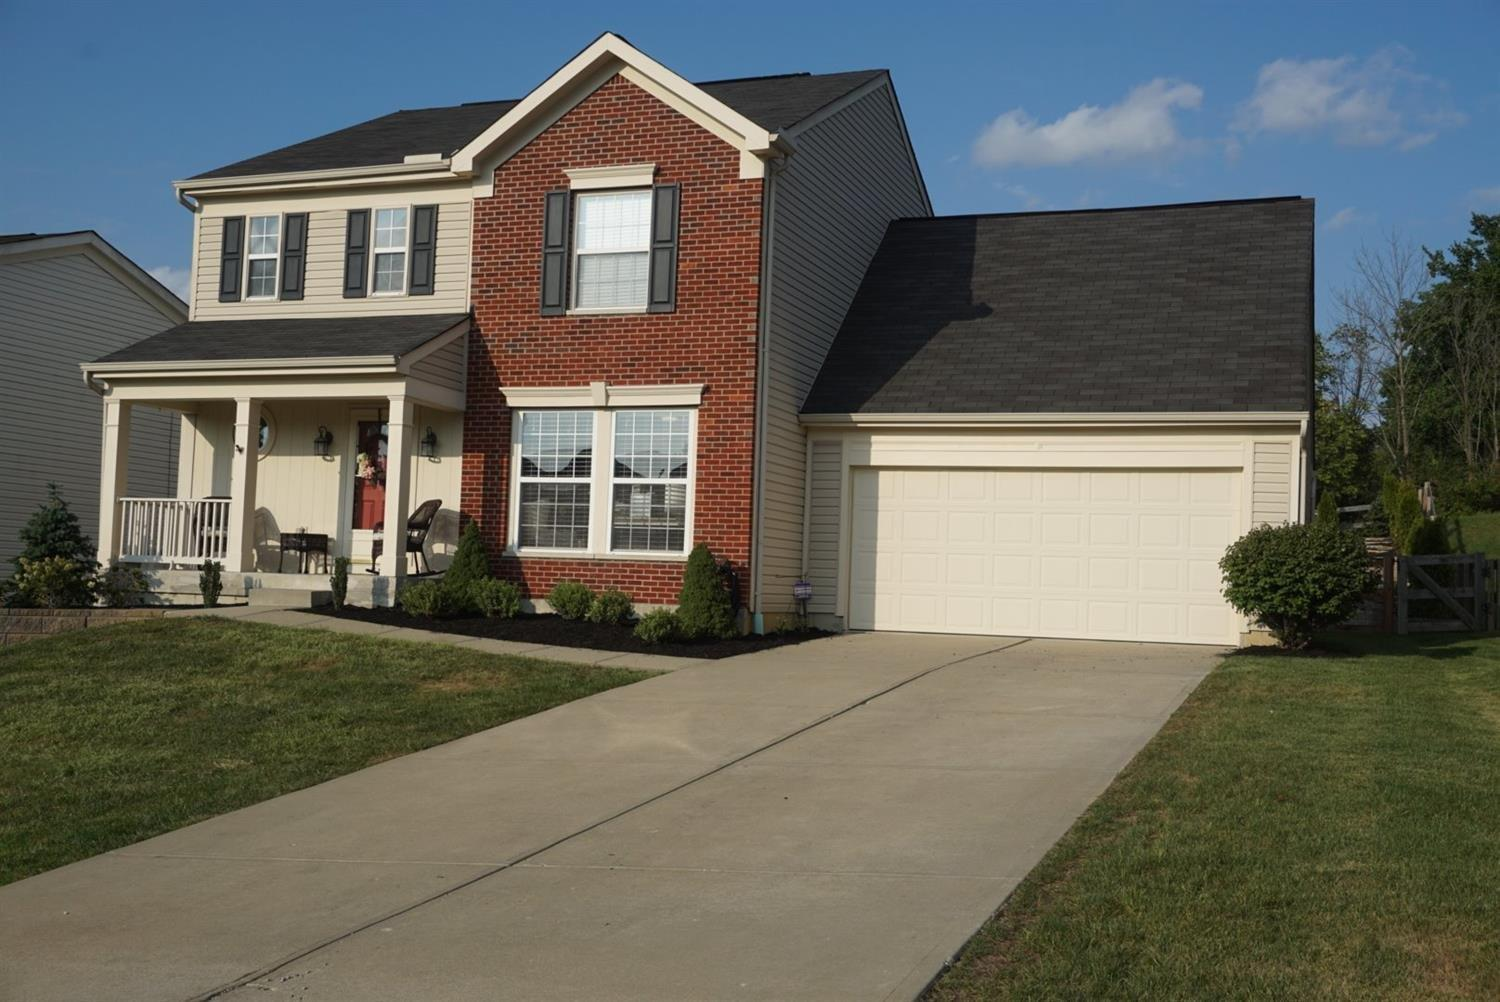 Photo 1 for 1202 Edgebrook Ct Florence, KY 41042